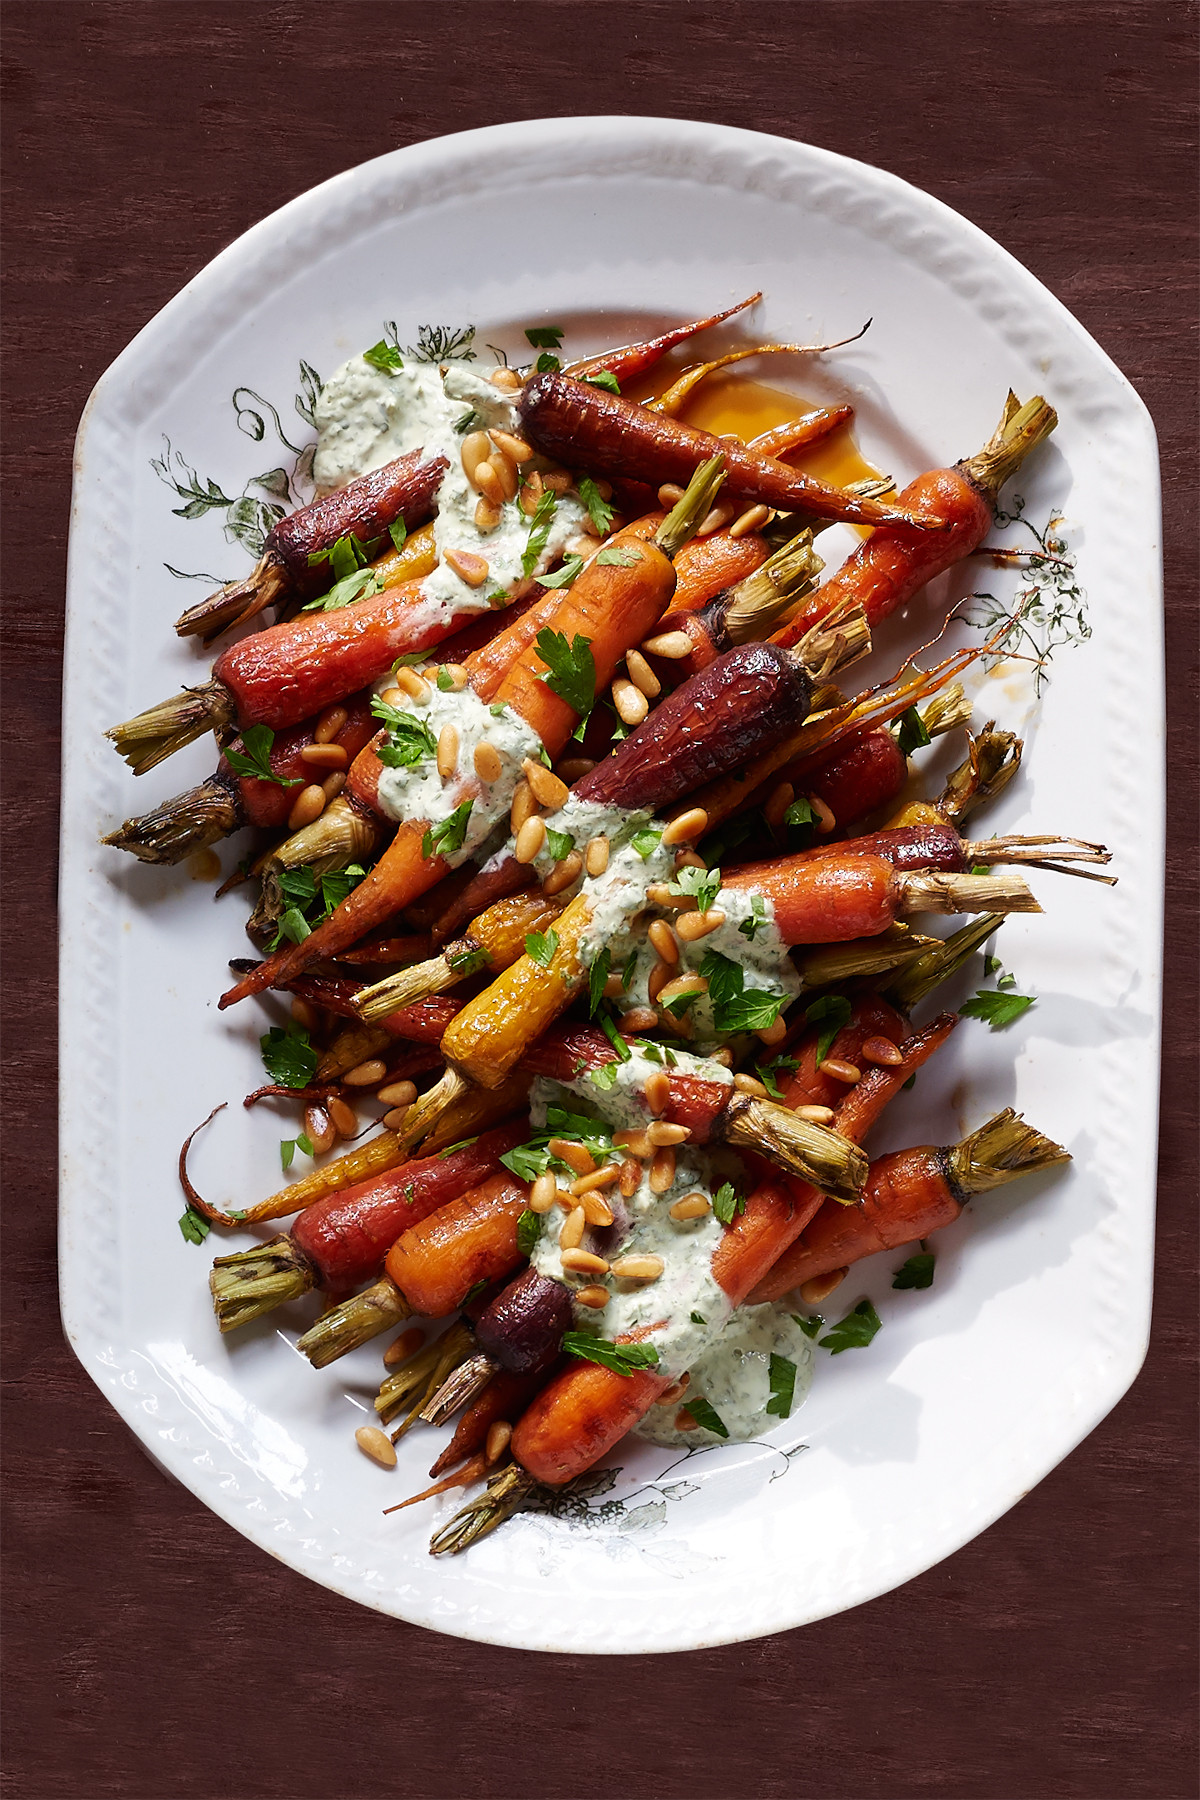 Best Vegetable Side Dishes For Thanksgiving  25 Easy Ve able Side Dishes Recipes for Best Ve able